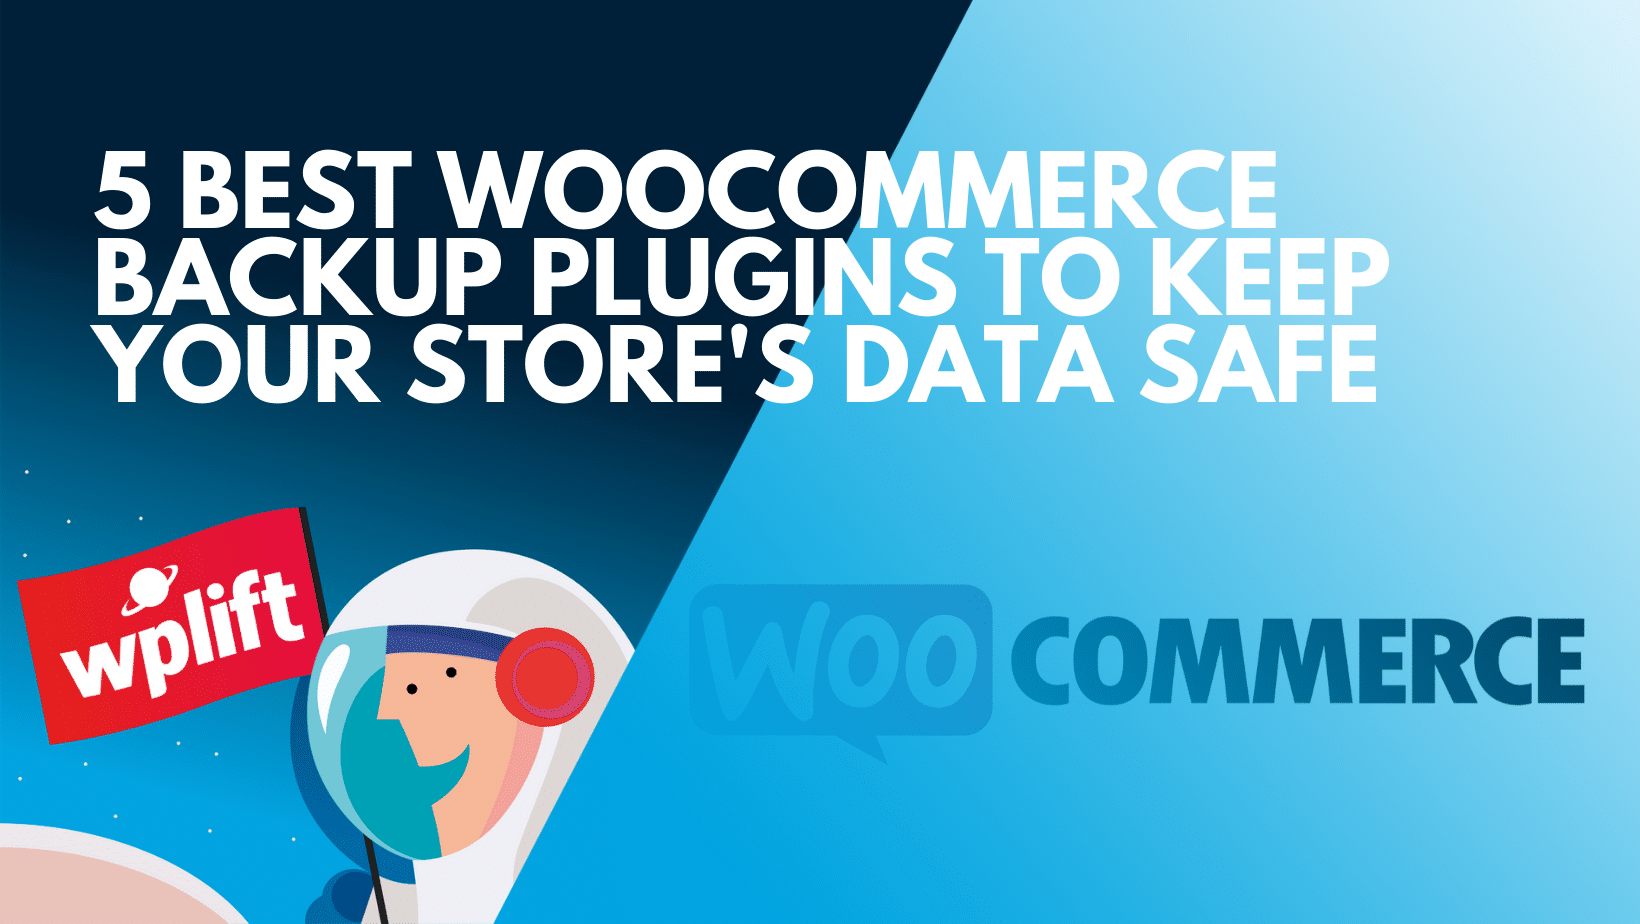 5-best-woocommerce-backup-plugins-to-keep-your-store's-data-safe